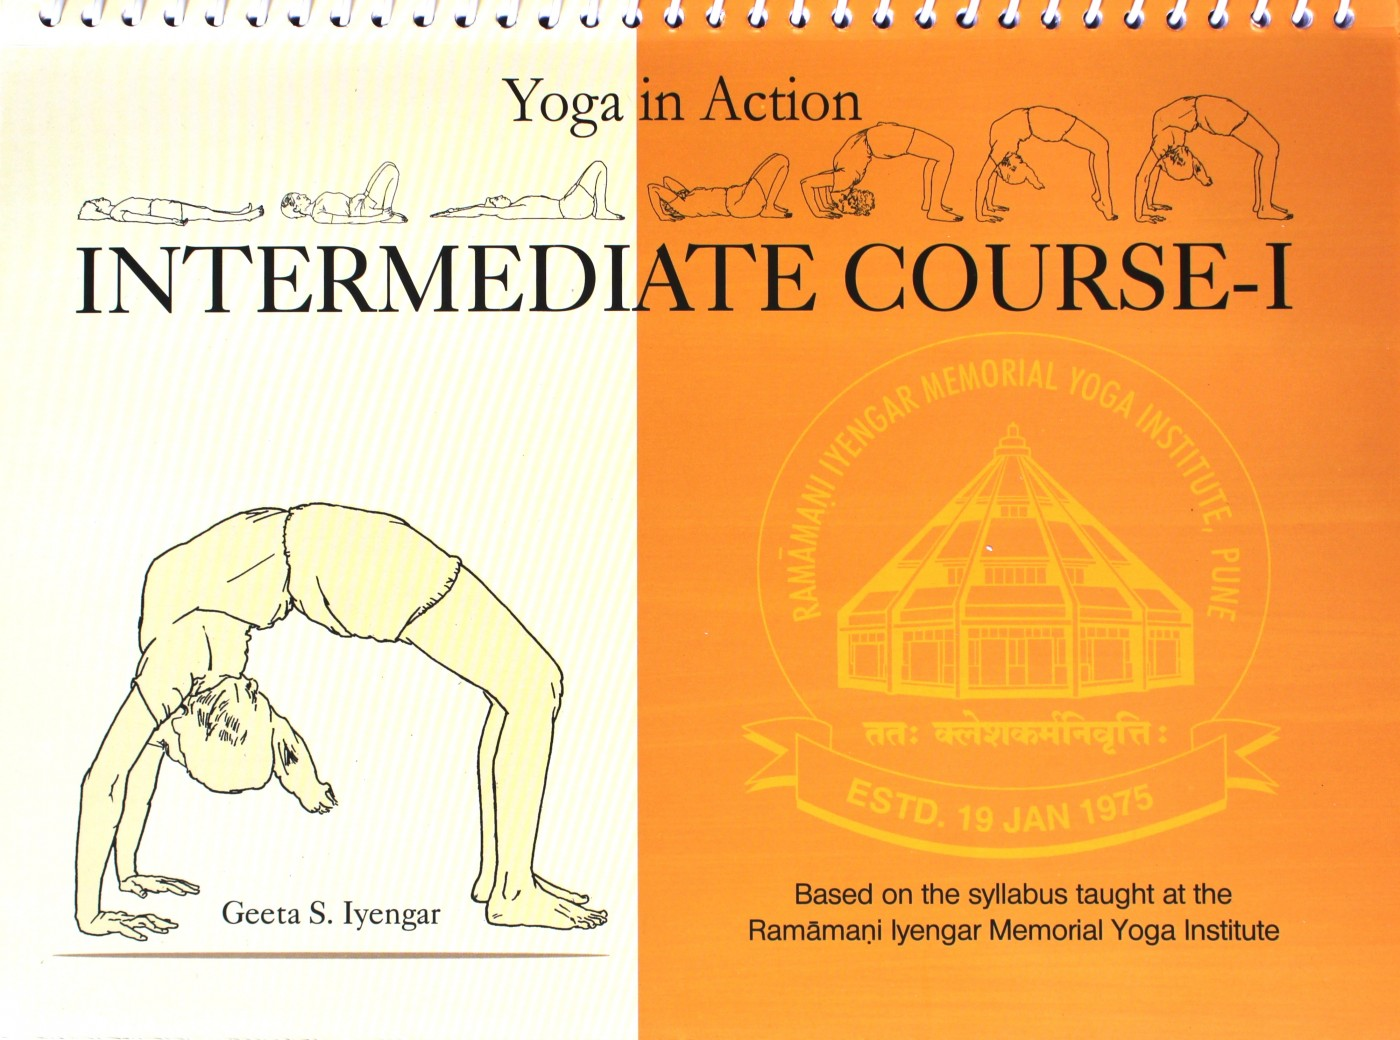 Geeta S. Iyengar Yoga in Action – Intermediate Course - I